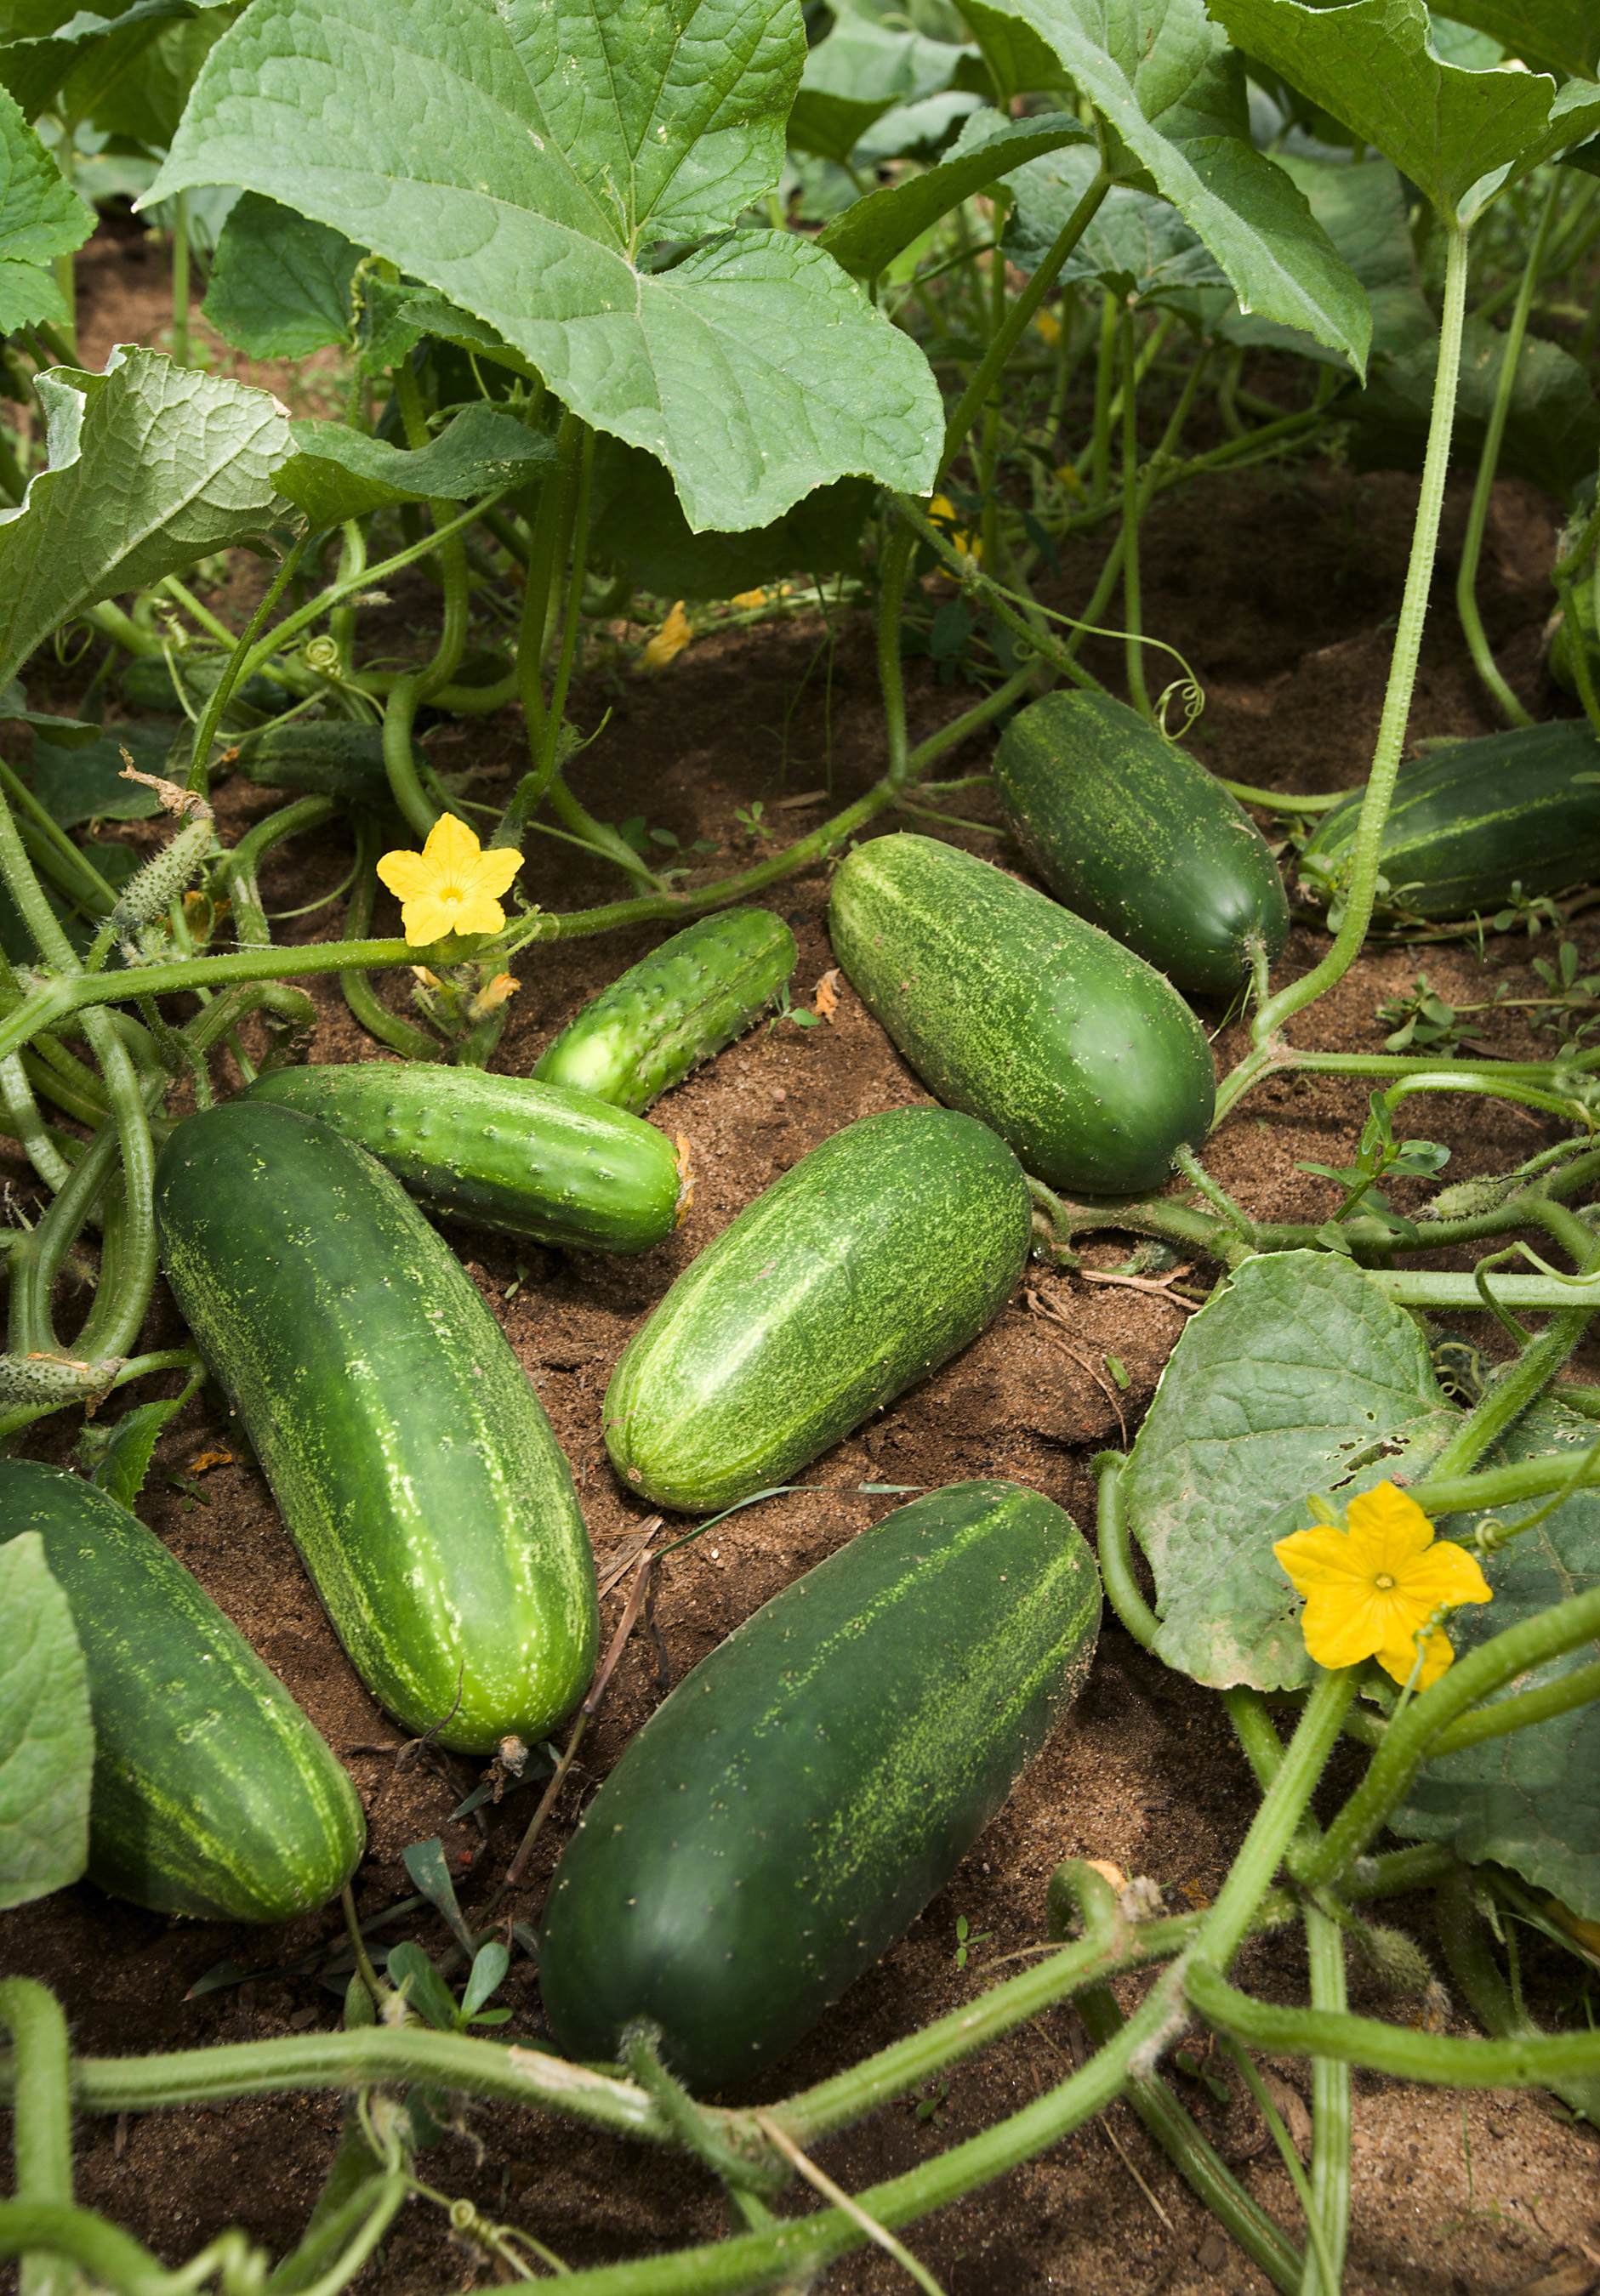 image of cucumber